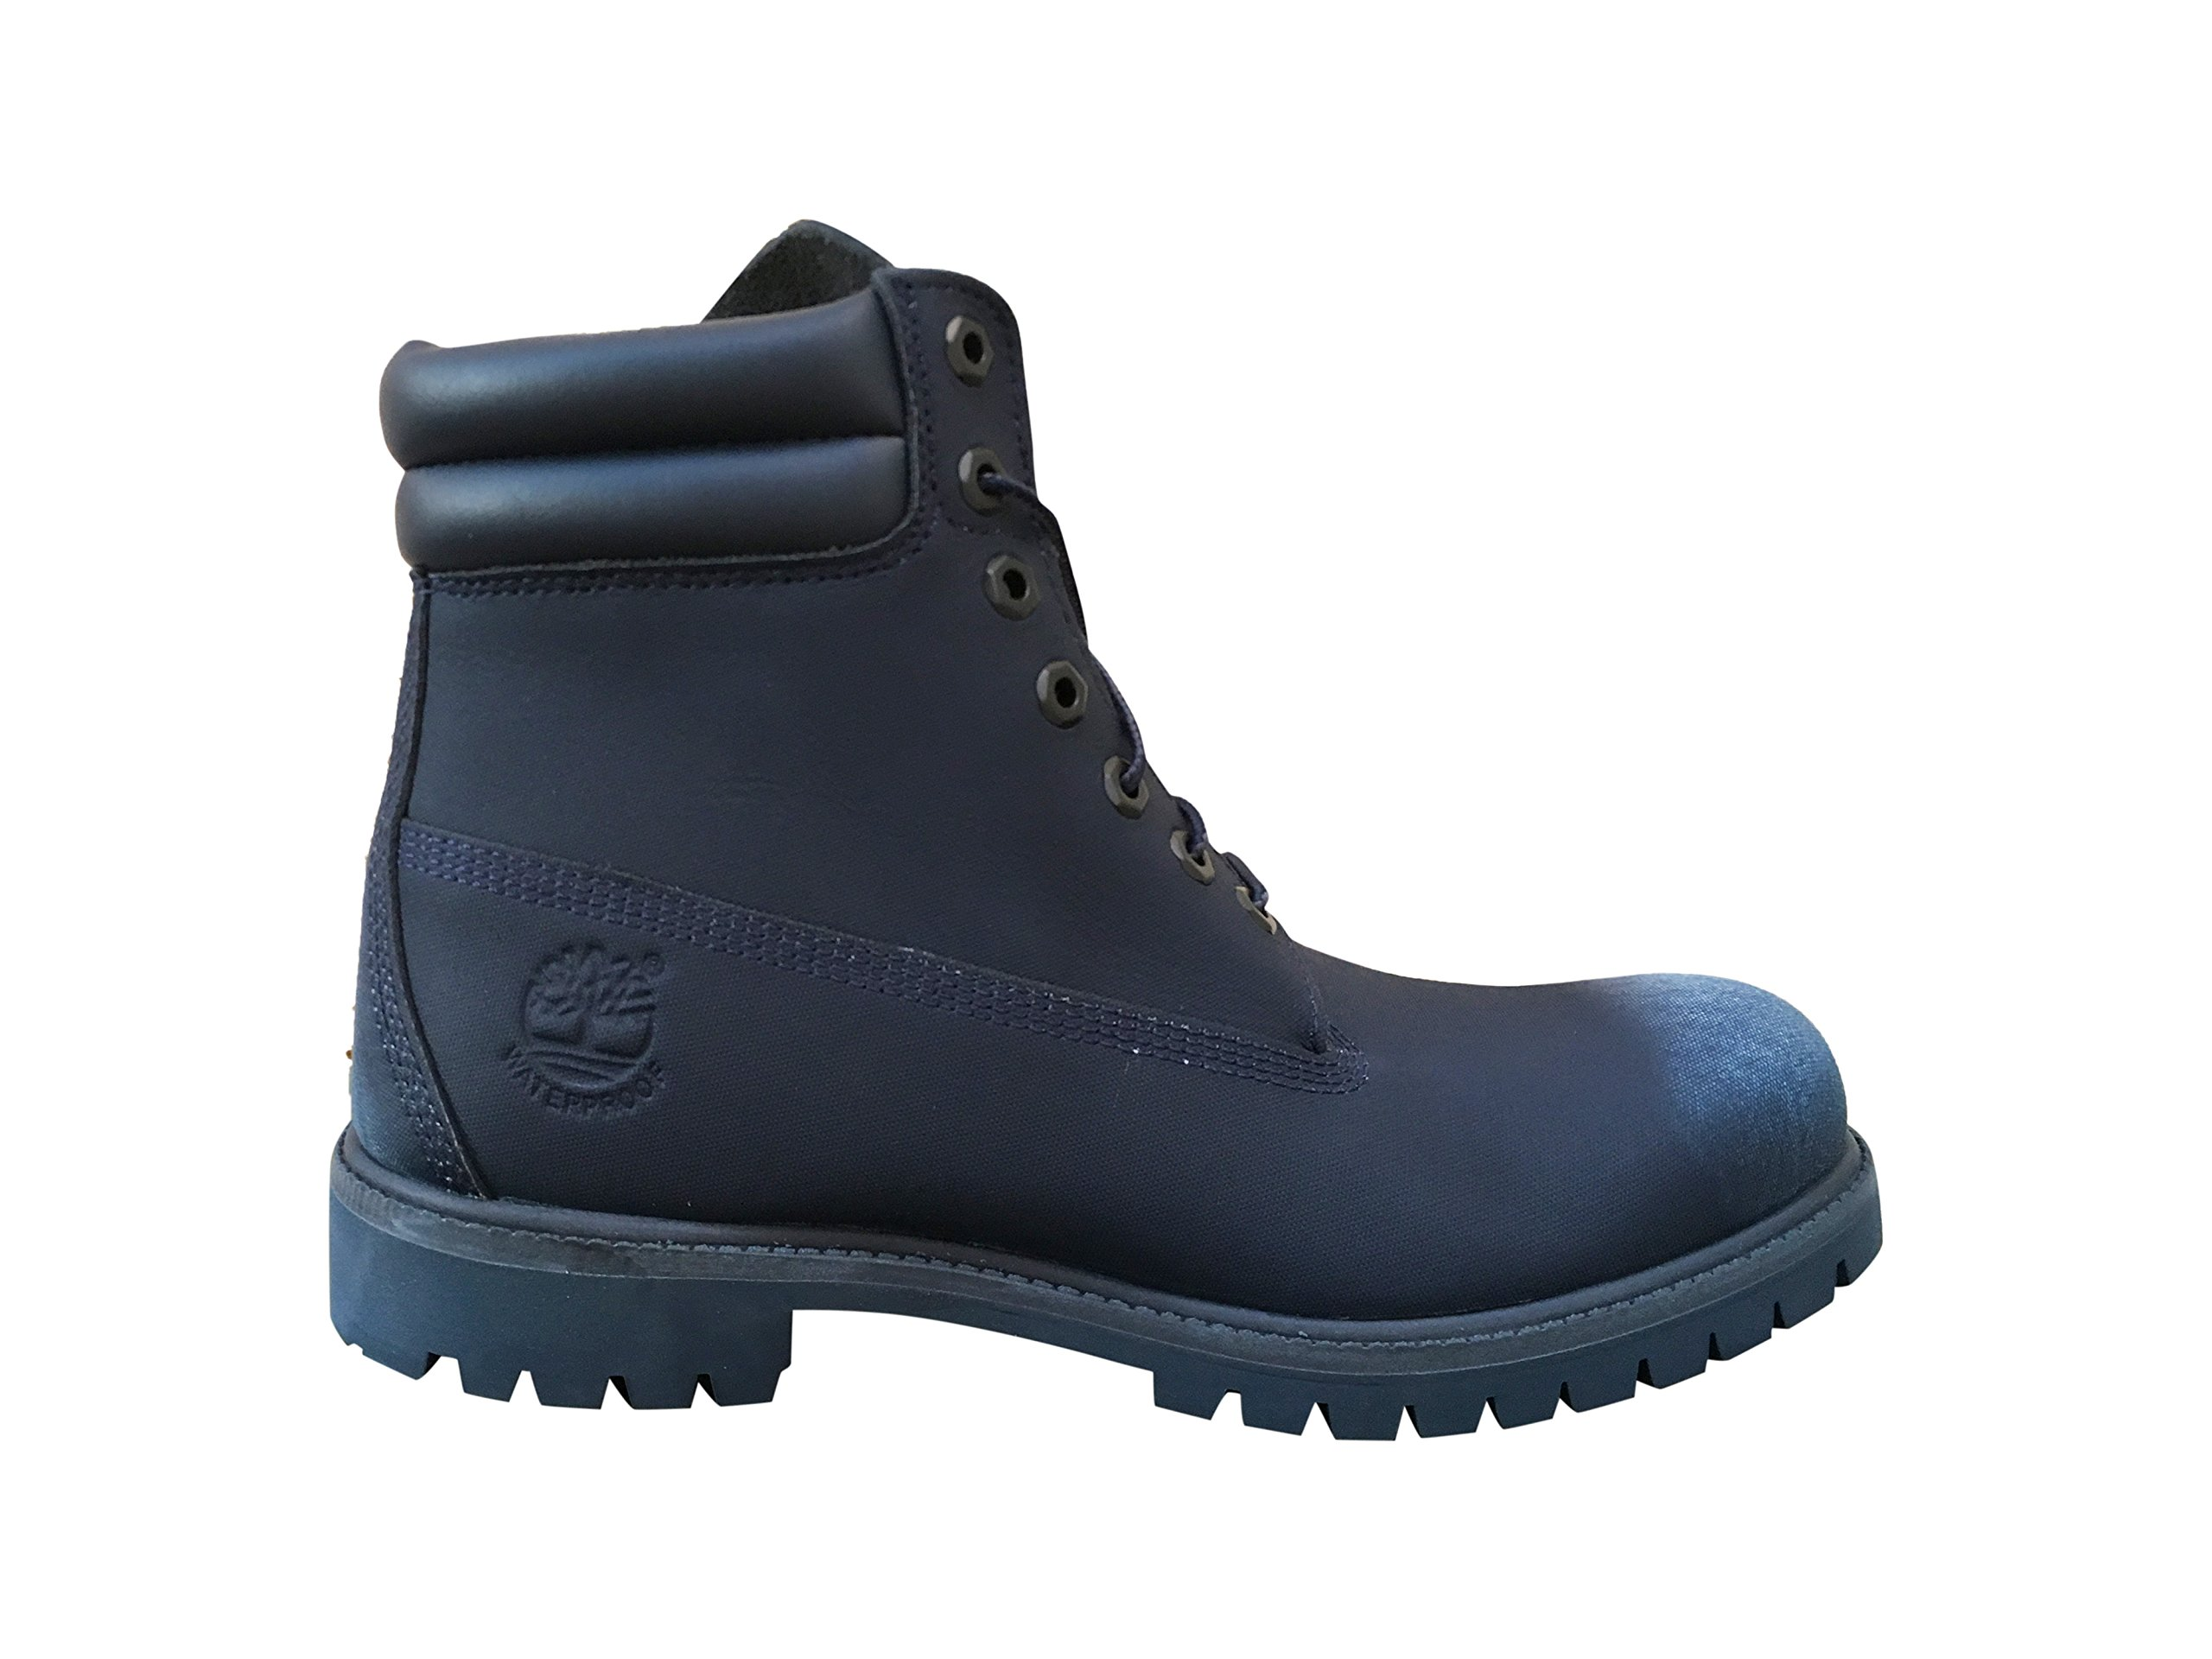 Timberland Men's 6'' Premium Waterproof Boot (9 D(M) US, Navy Tech Tough) by Timberland